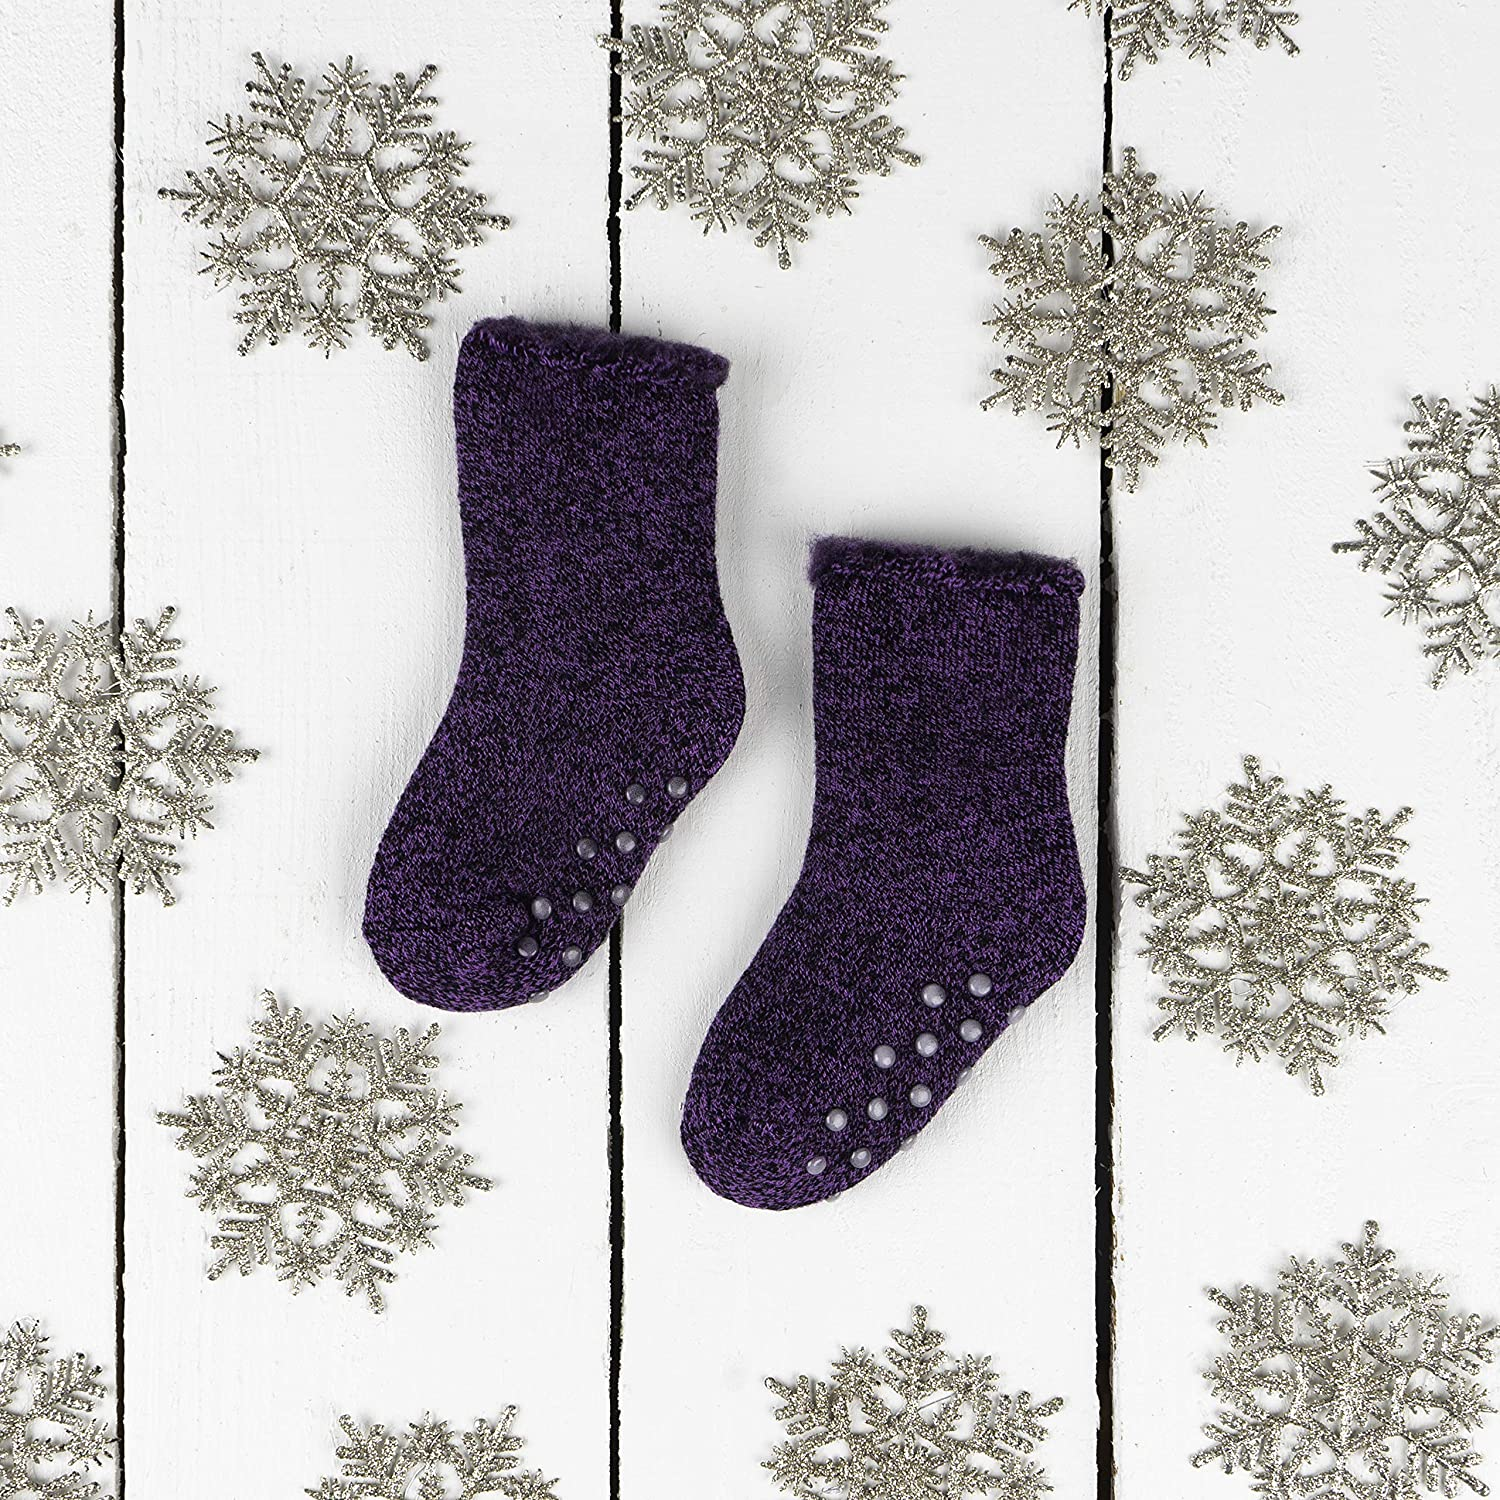 Gripped//Non Gripped Combo Hot Feet Toddler 5pk Crew Thermal Socks w//Soft Thick Brushing Inside